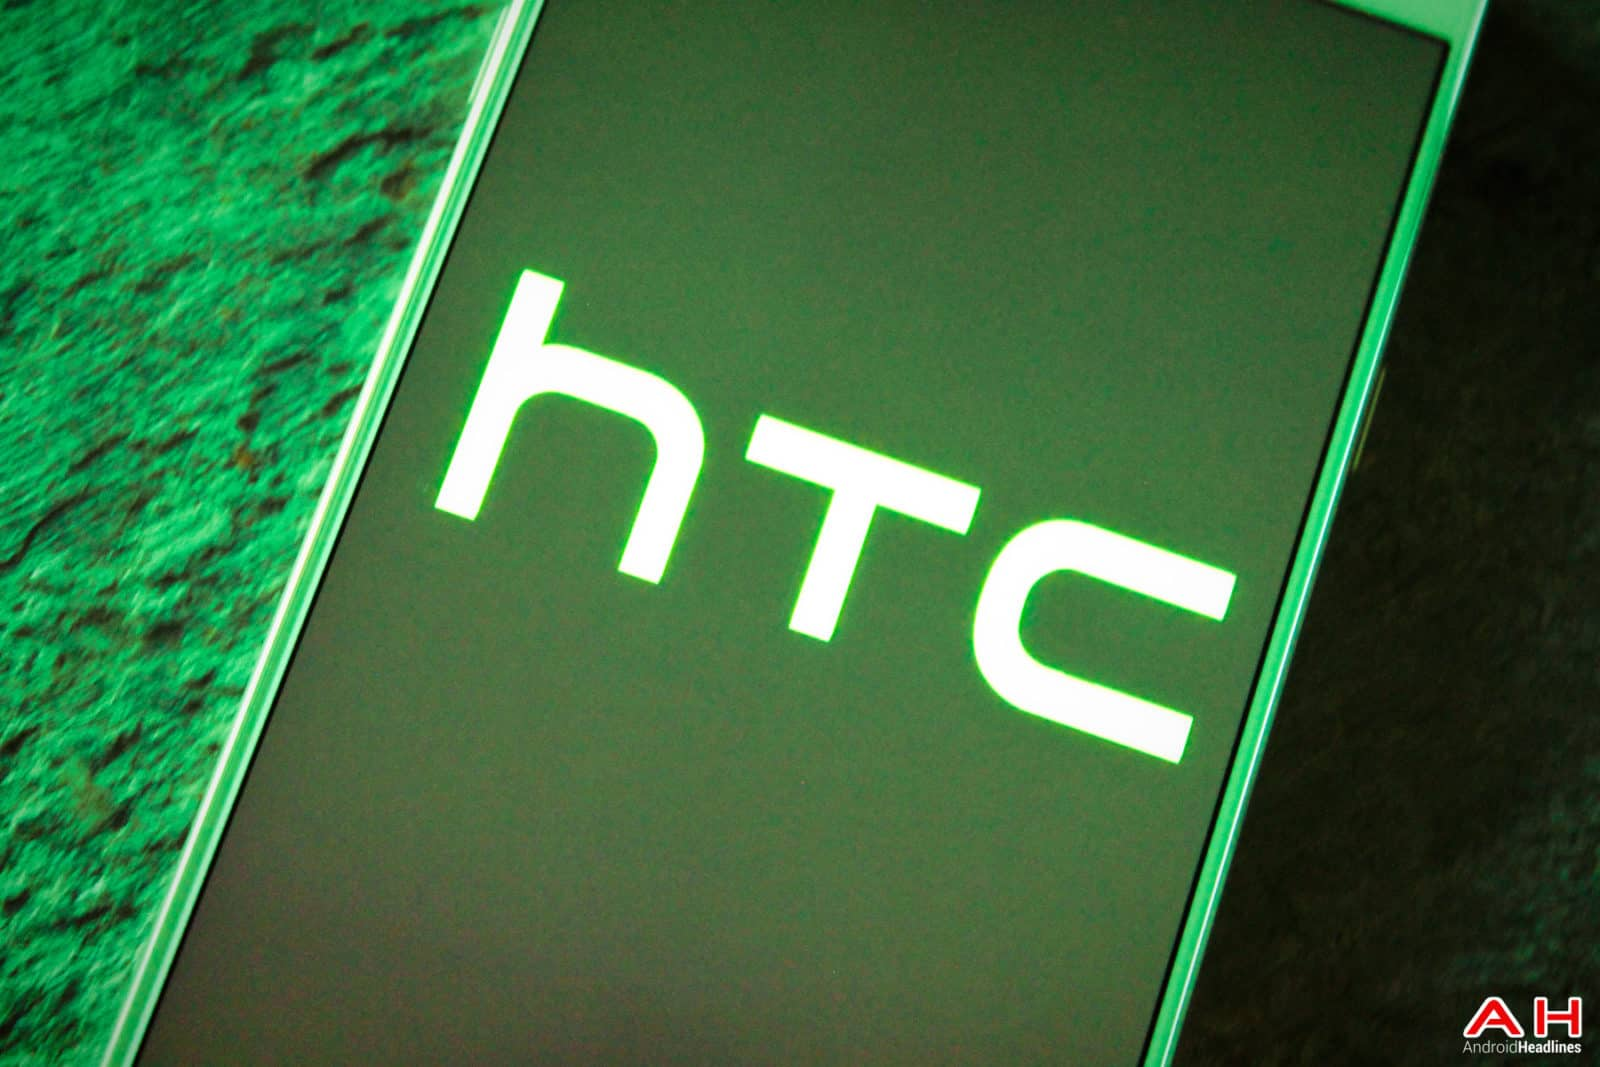 AH 2015 HTC LOGO Chris Sept-10